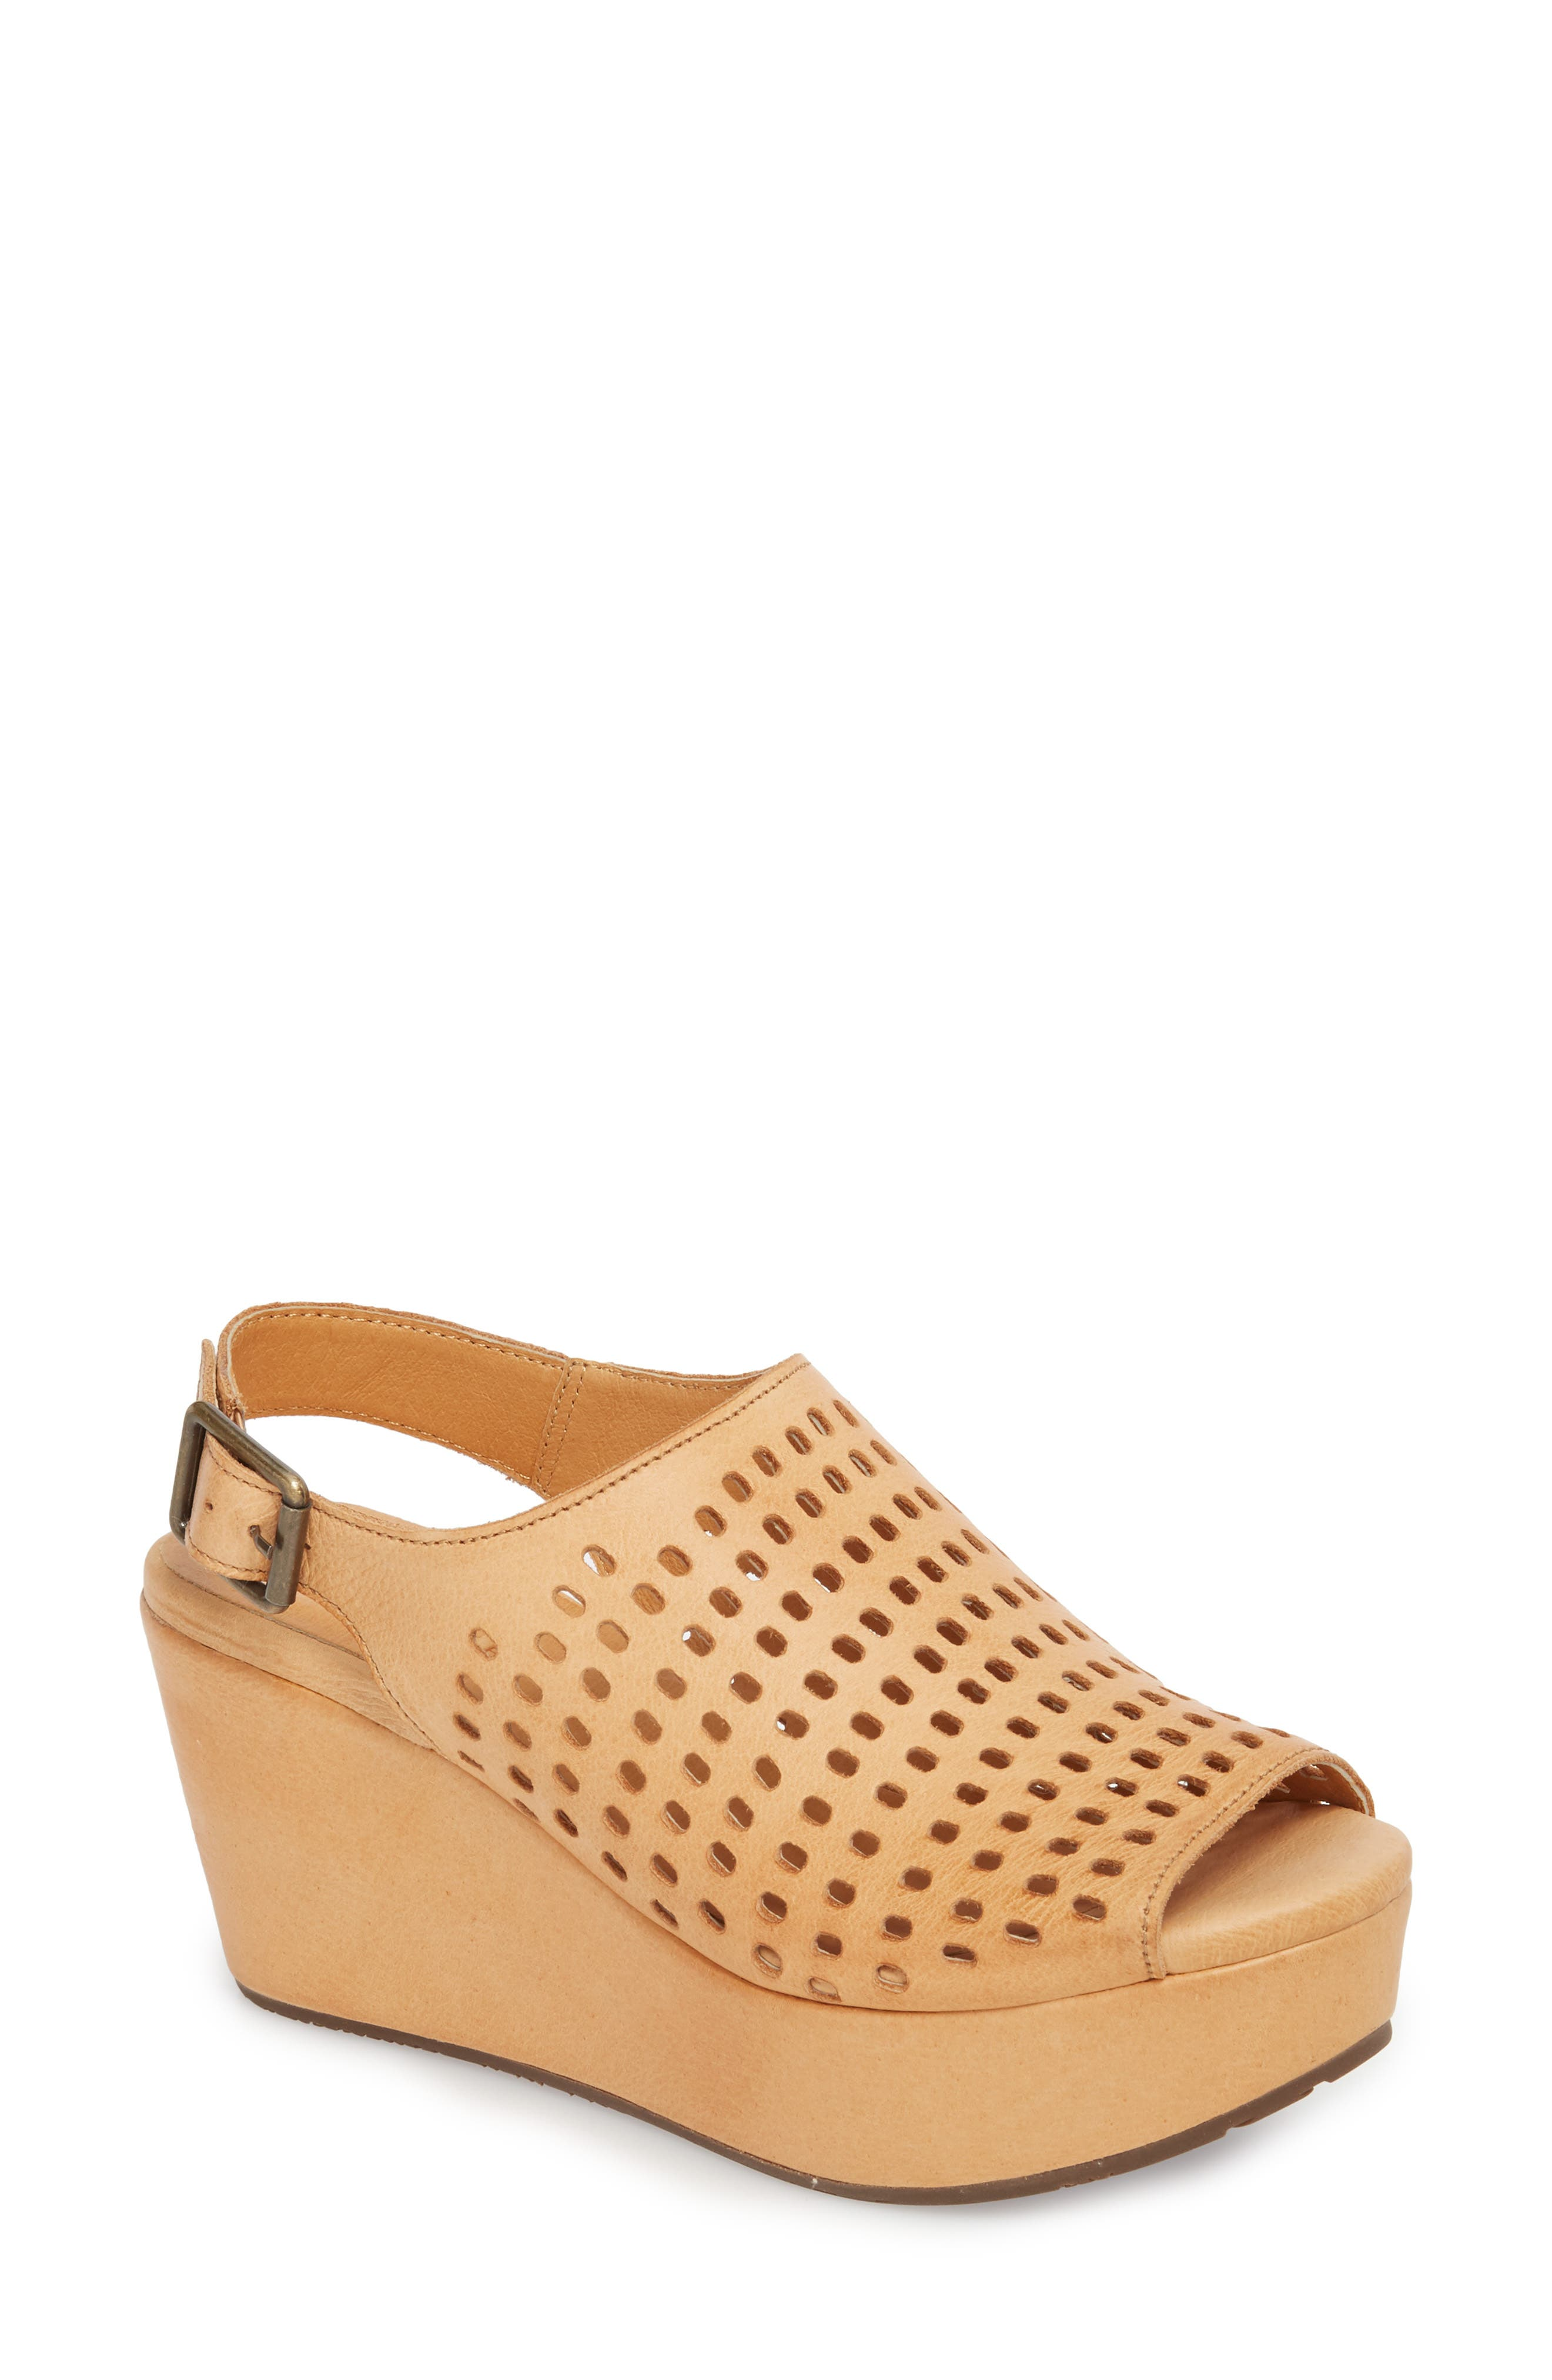 Wally Platform Wedge Sandal,                         Main,                         color, Tan Leather